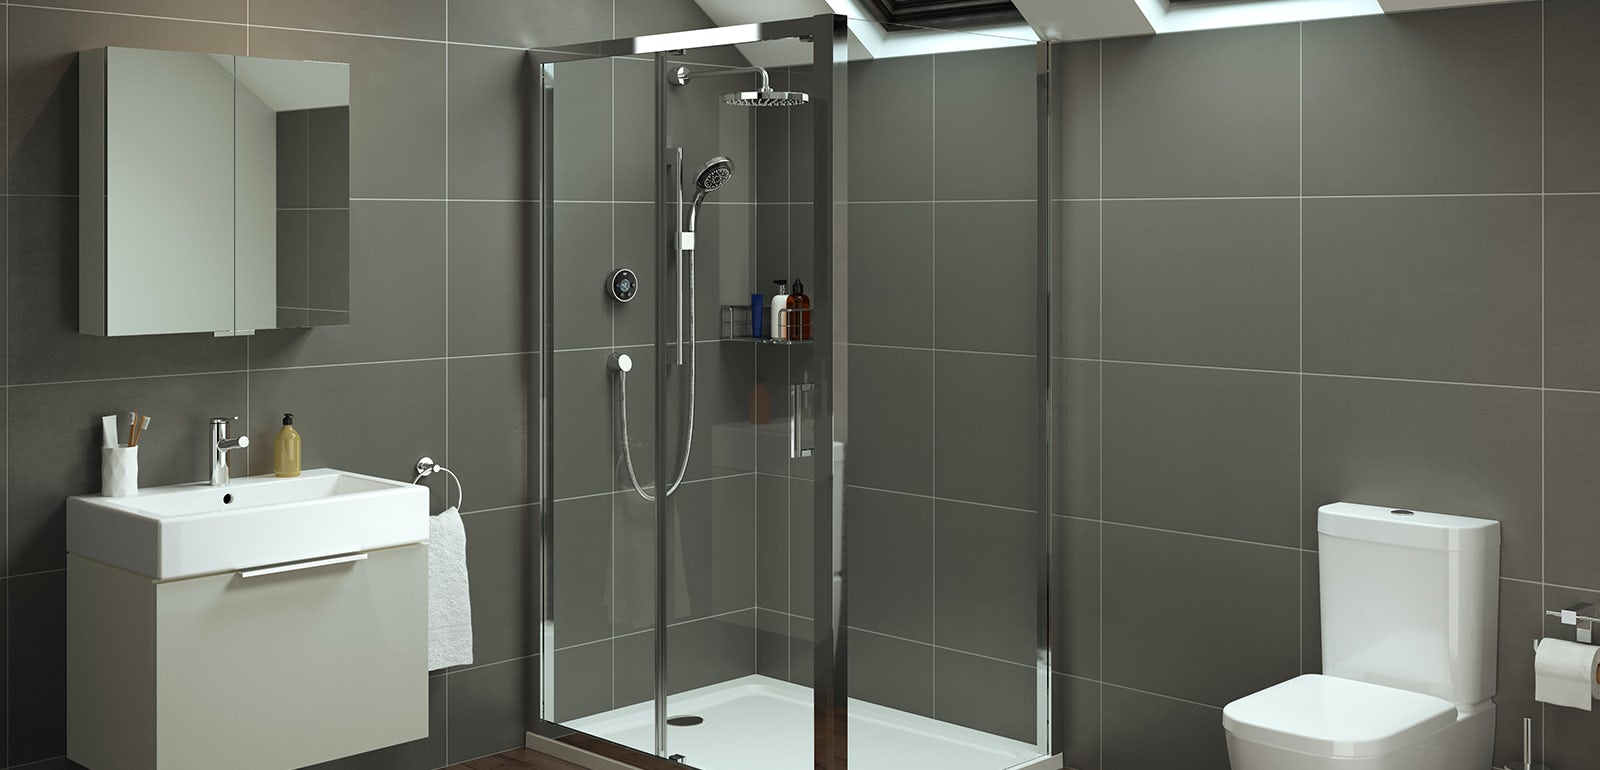 4 expert bathroom budgeting tips from Mira Showers